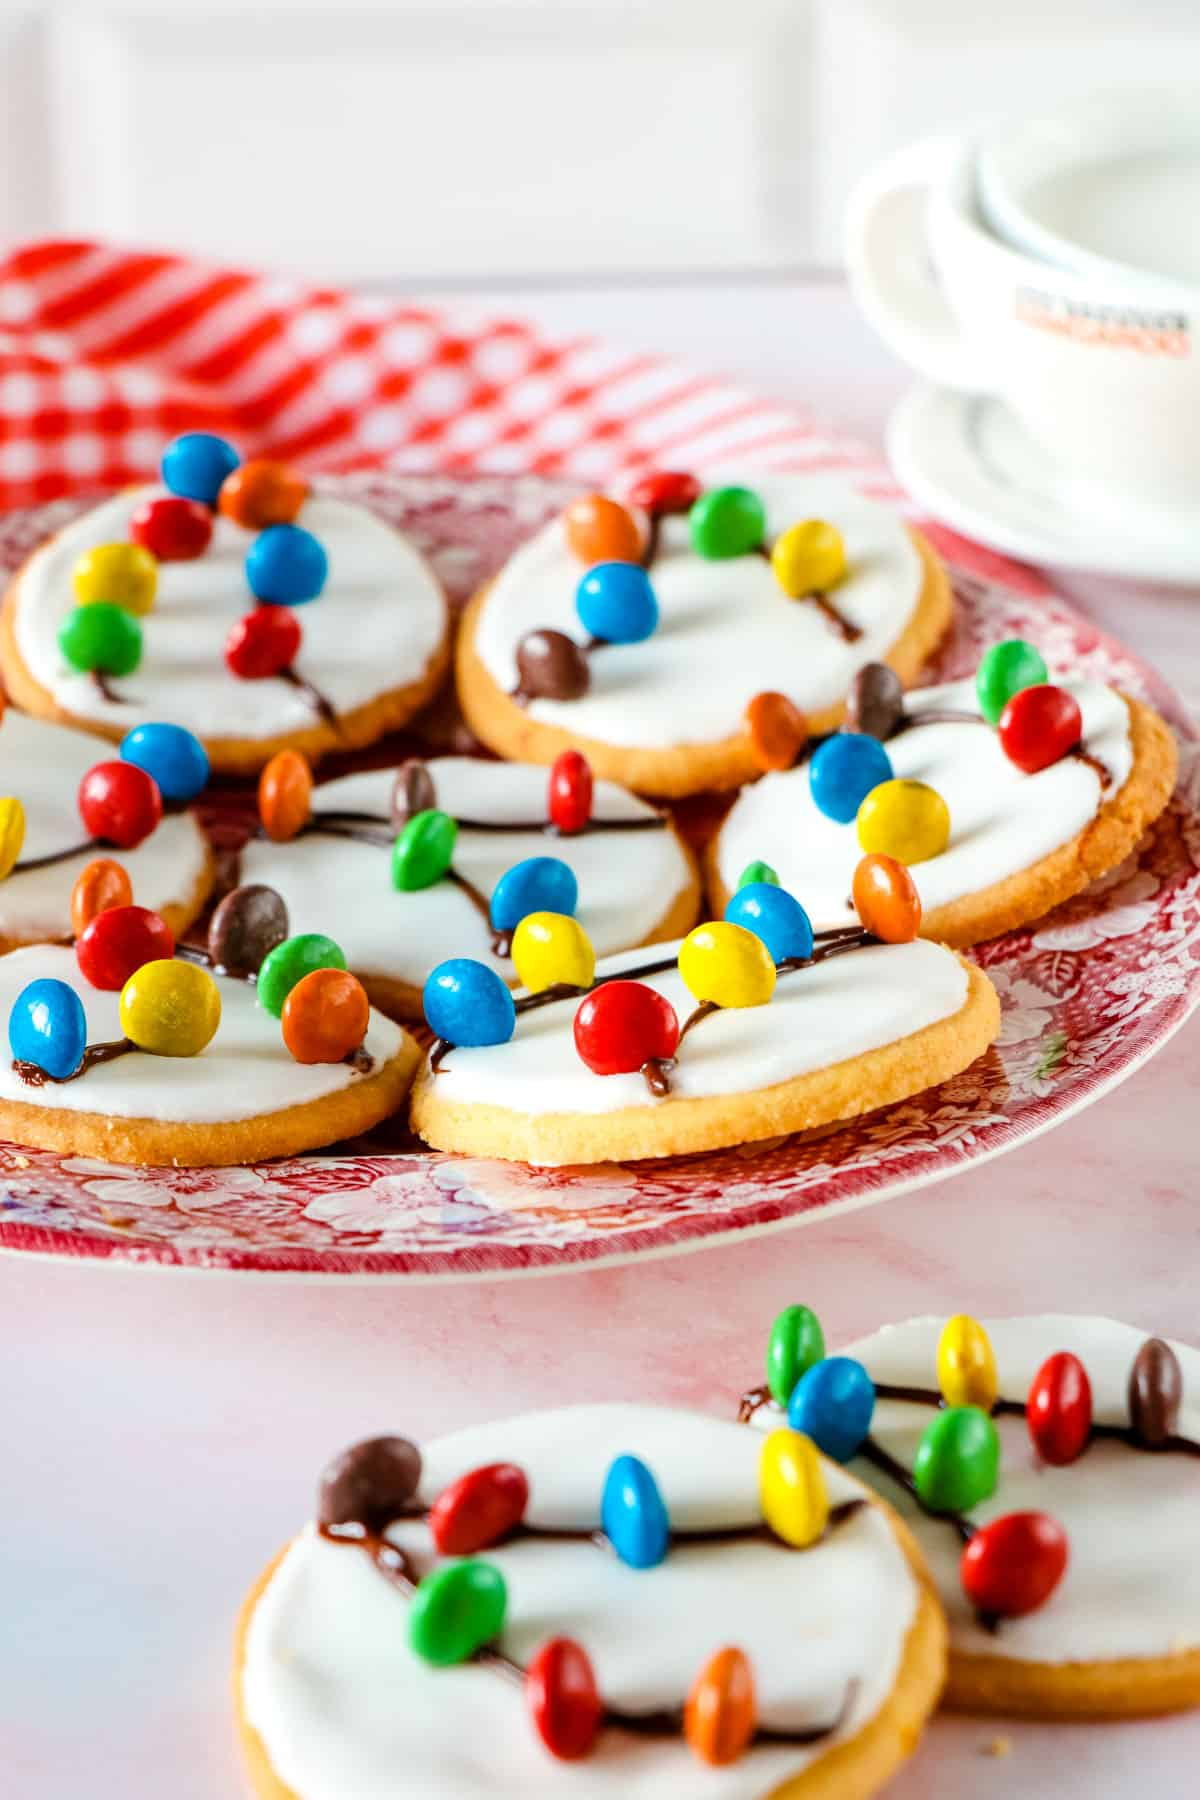 iced sugar cookies decorated with m and m's and frosting to look like Christmas lights